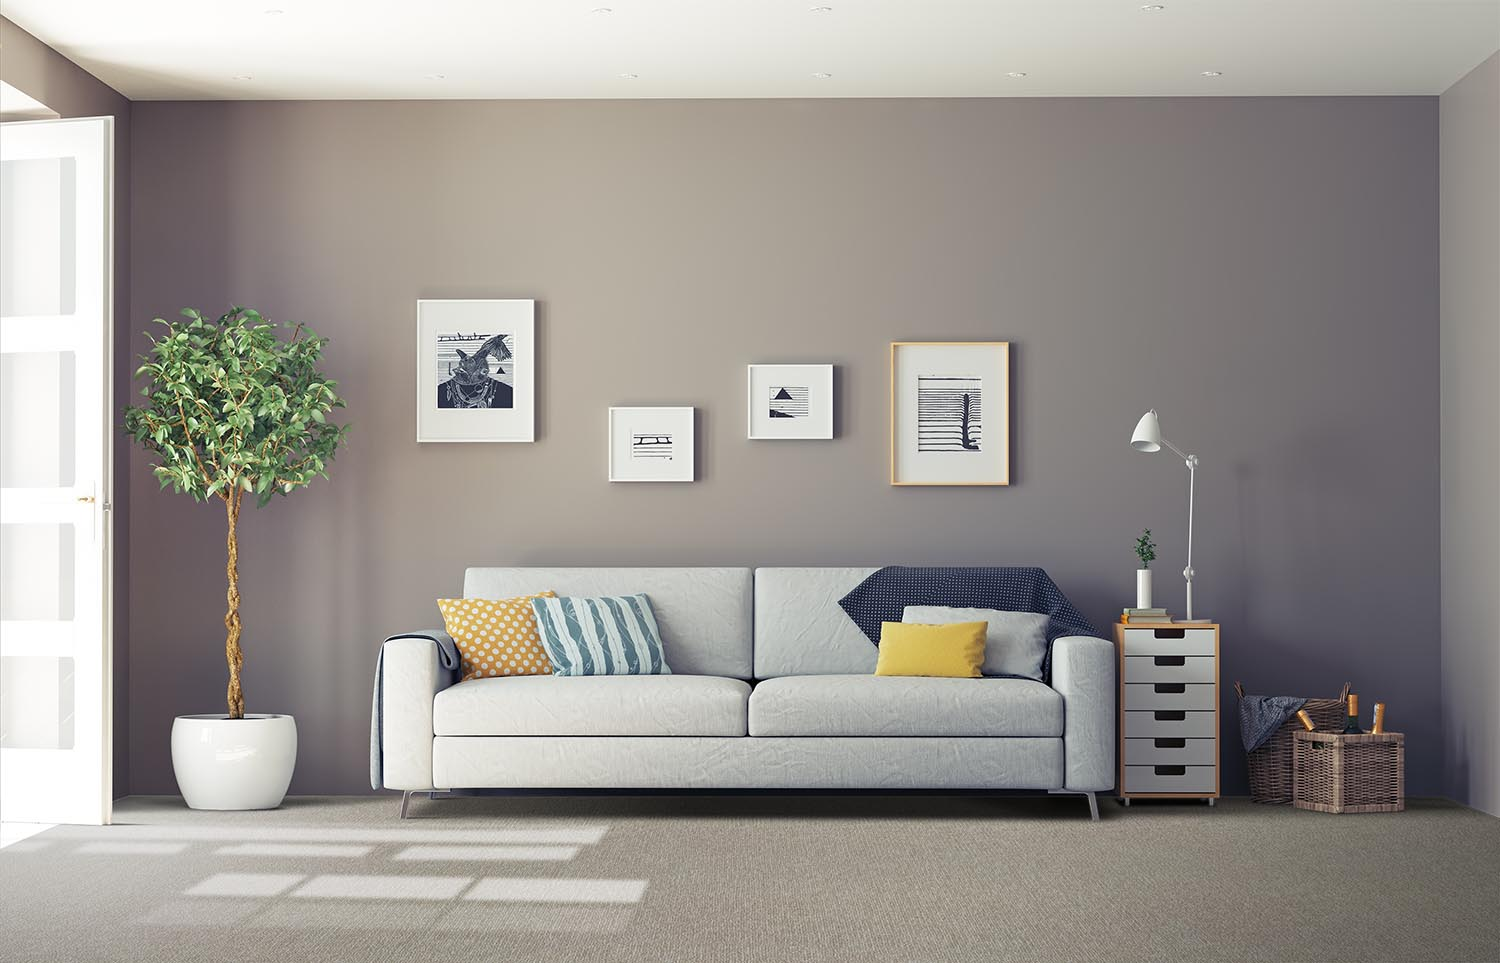 Influence - Picture This classic living room